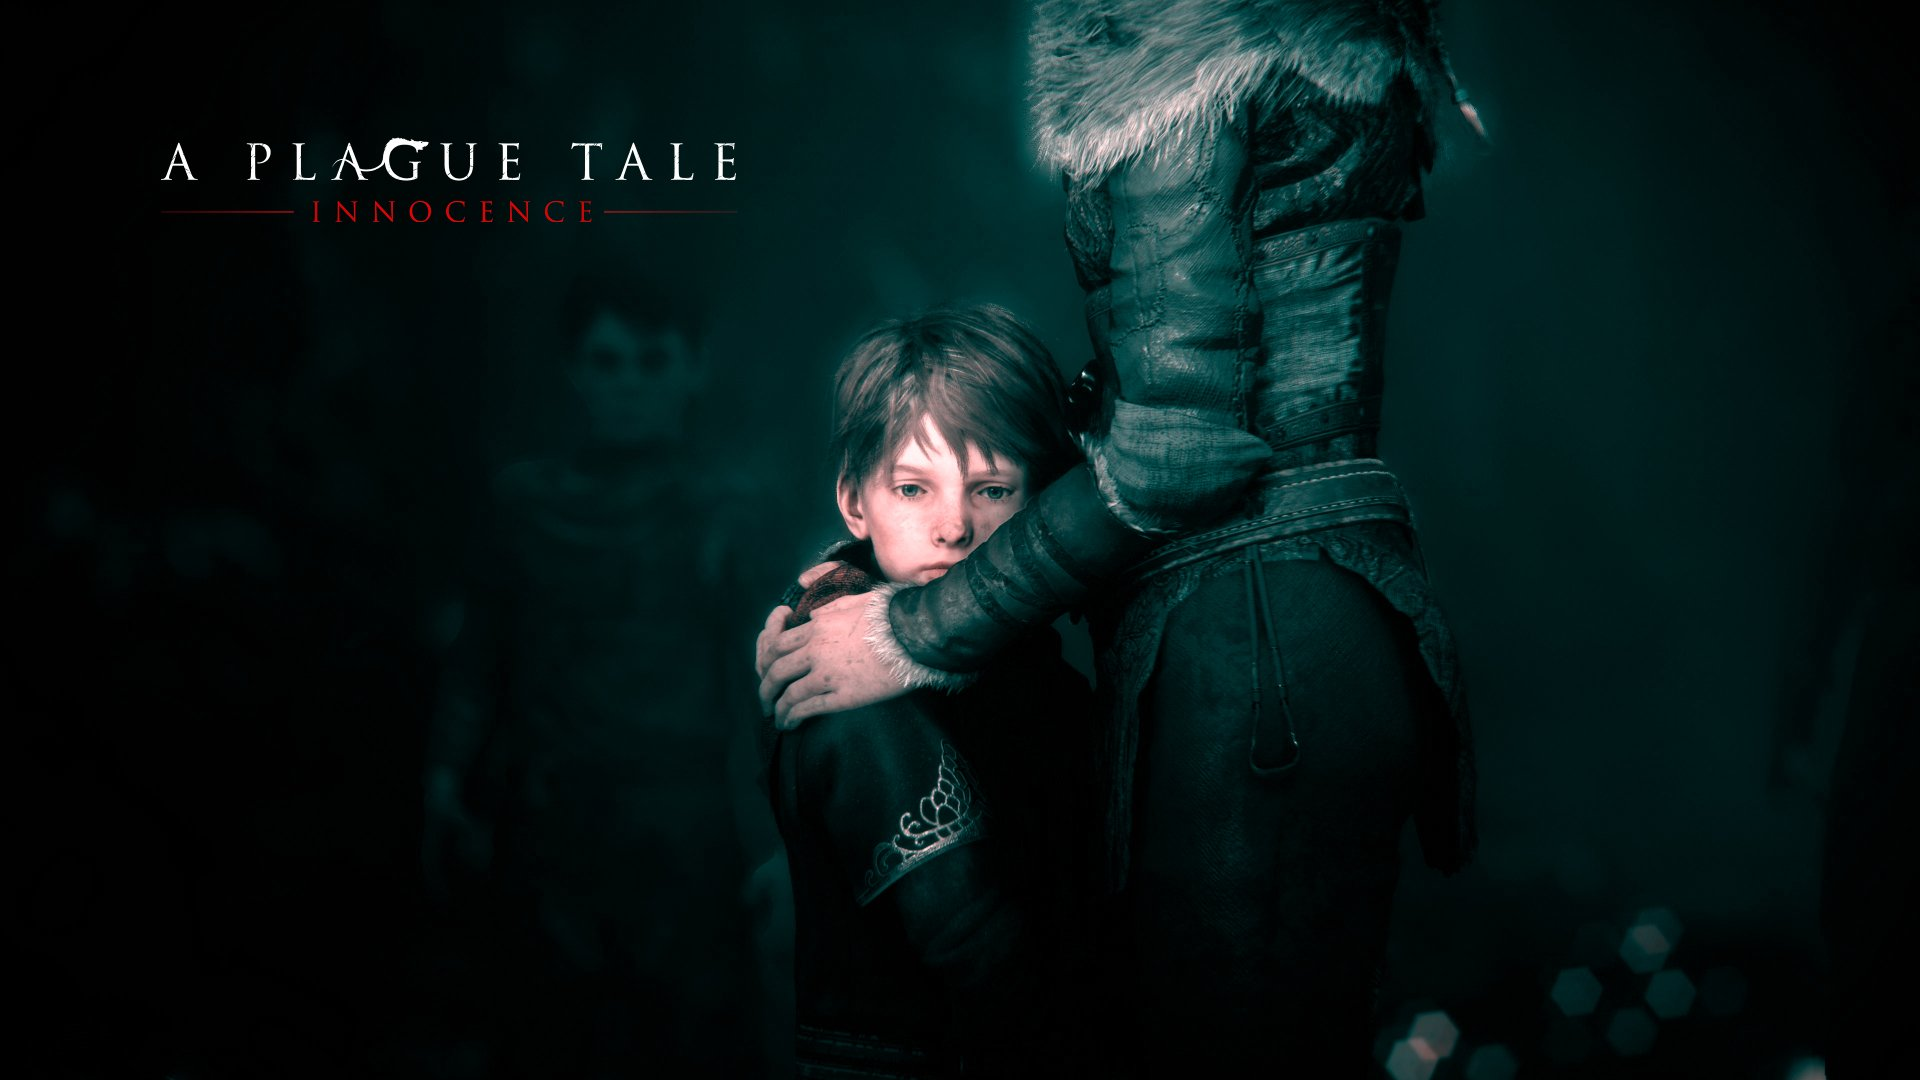 10 4k Ultra Hd A Plague Tale Innocence Wallpapers Background